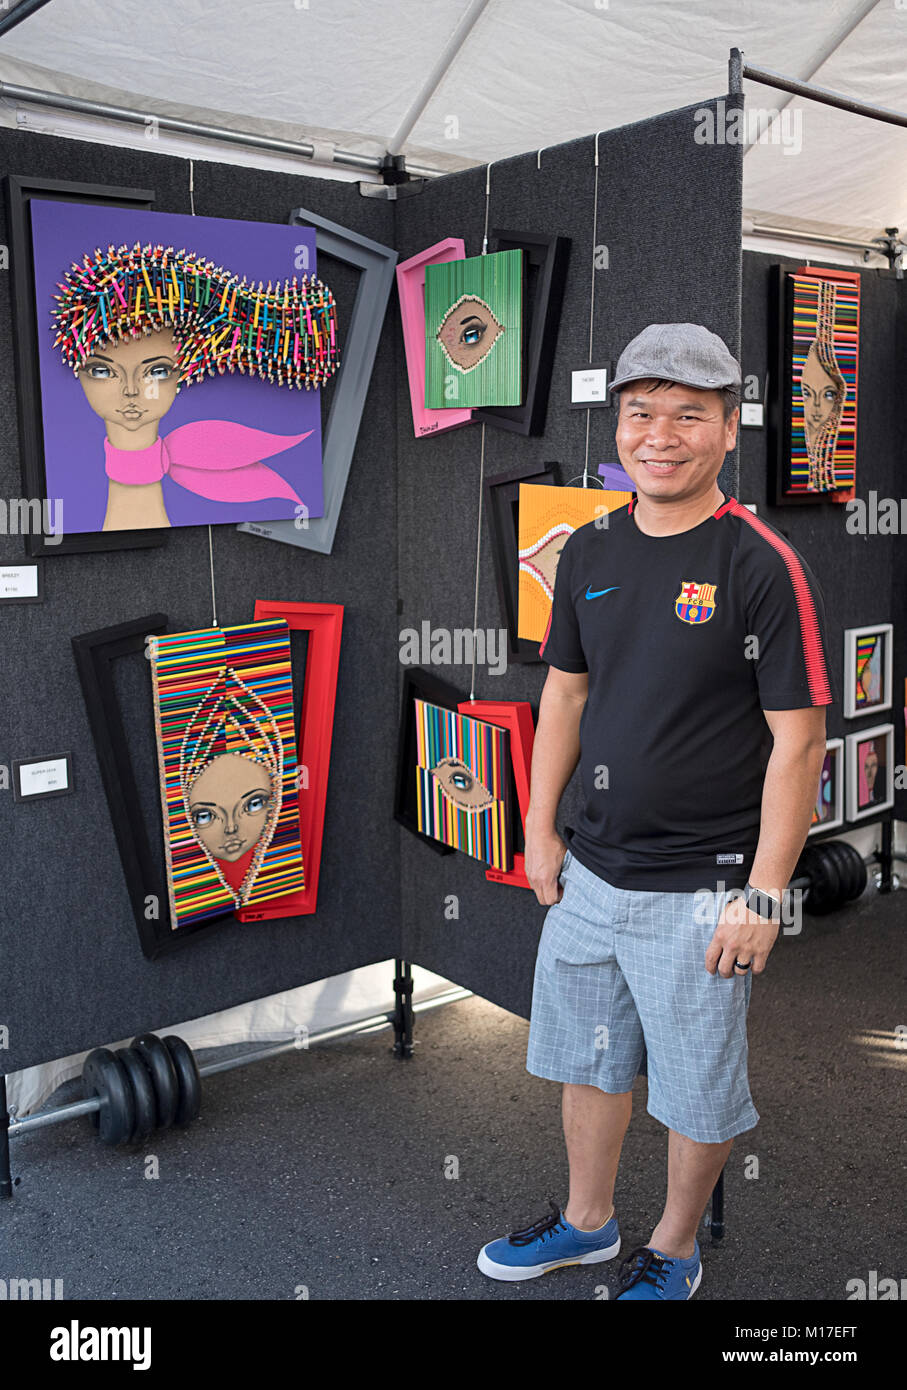 Portrait of Chinese artist Sip Tshun Ng who uses color pencils in his work. At an outdoor art fair in Dleray Beach, - Stock Image